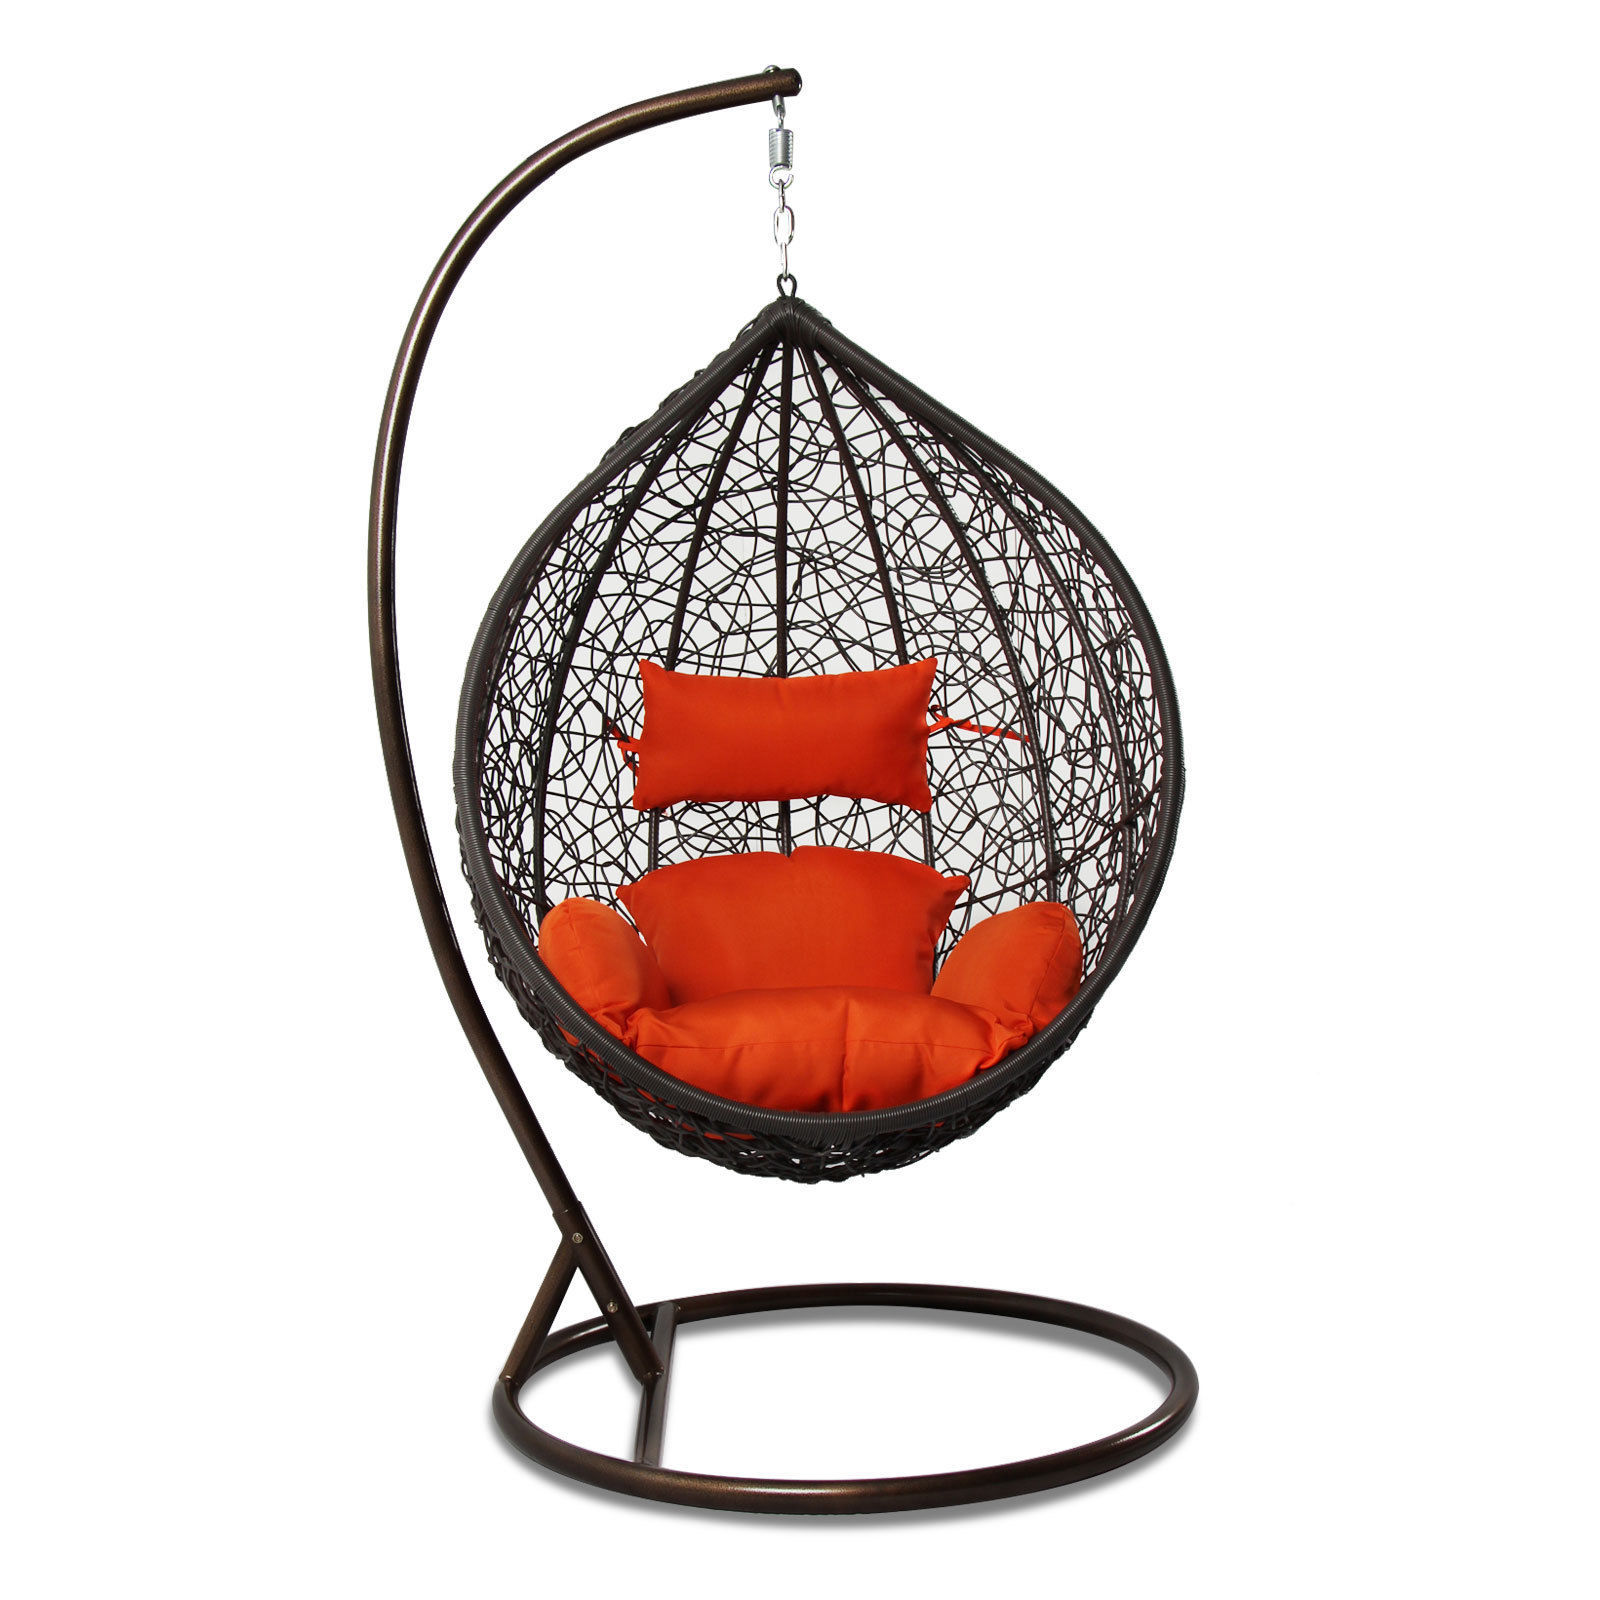 egg swing chair massage albuquerque rattan outdoor wicker hanging shape stand porch